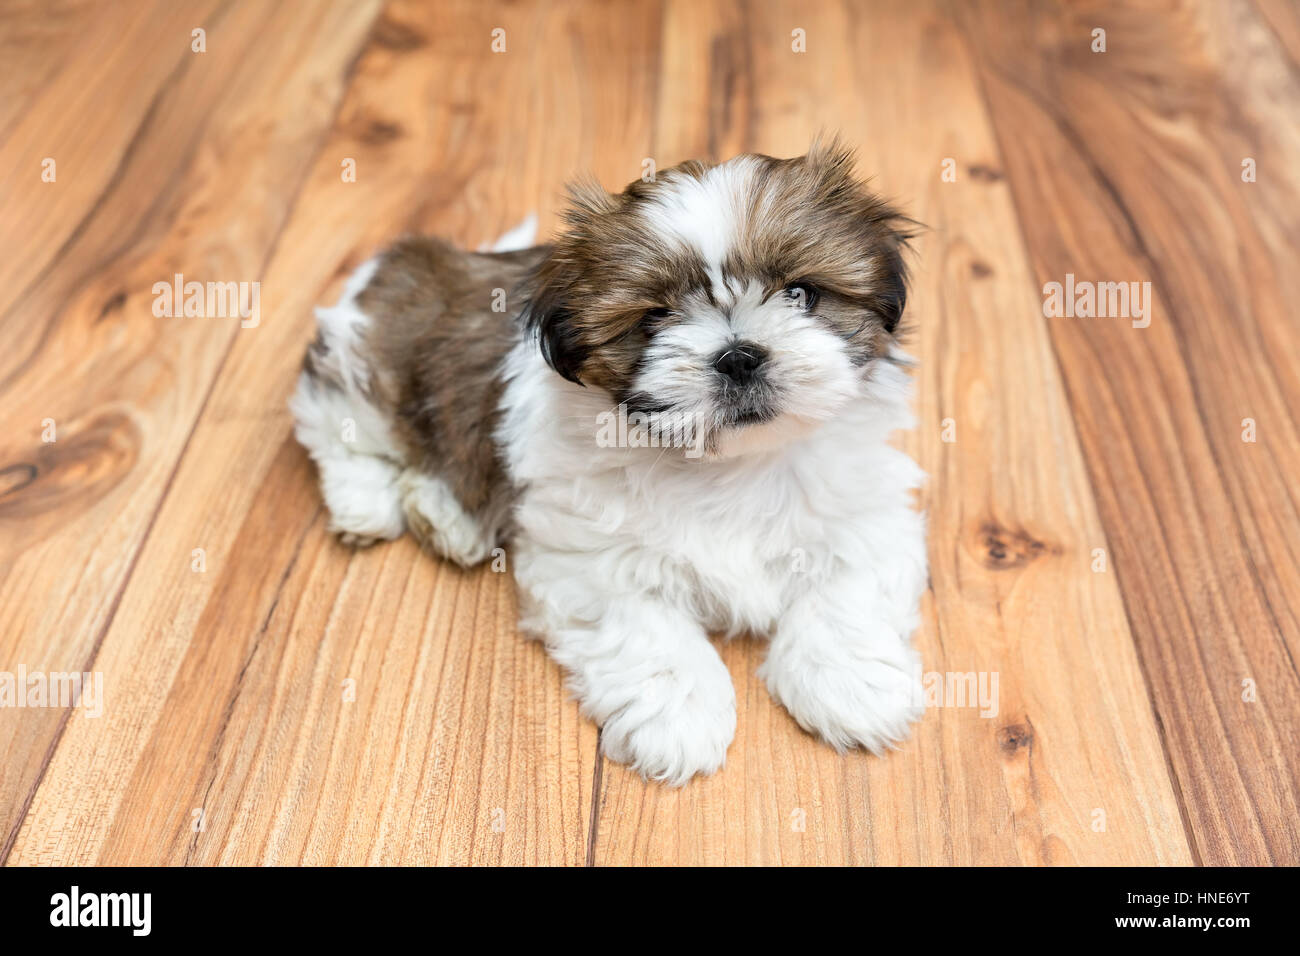 Young Chi Chu puppy lying on parquet flooring - Stock Image